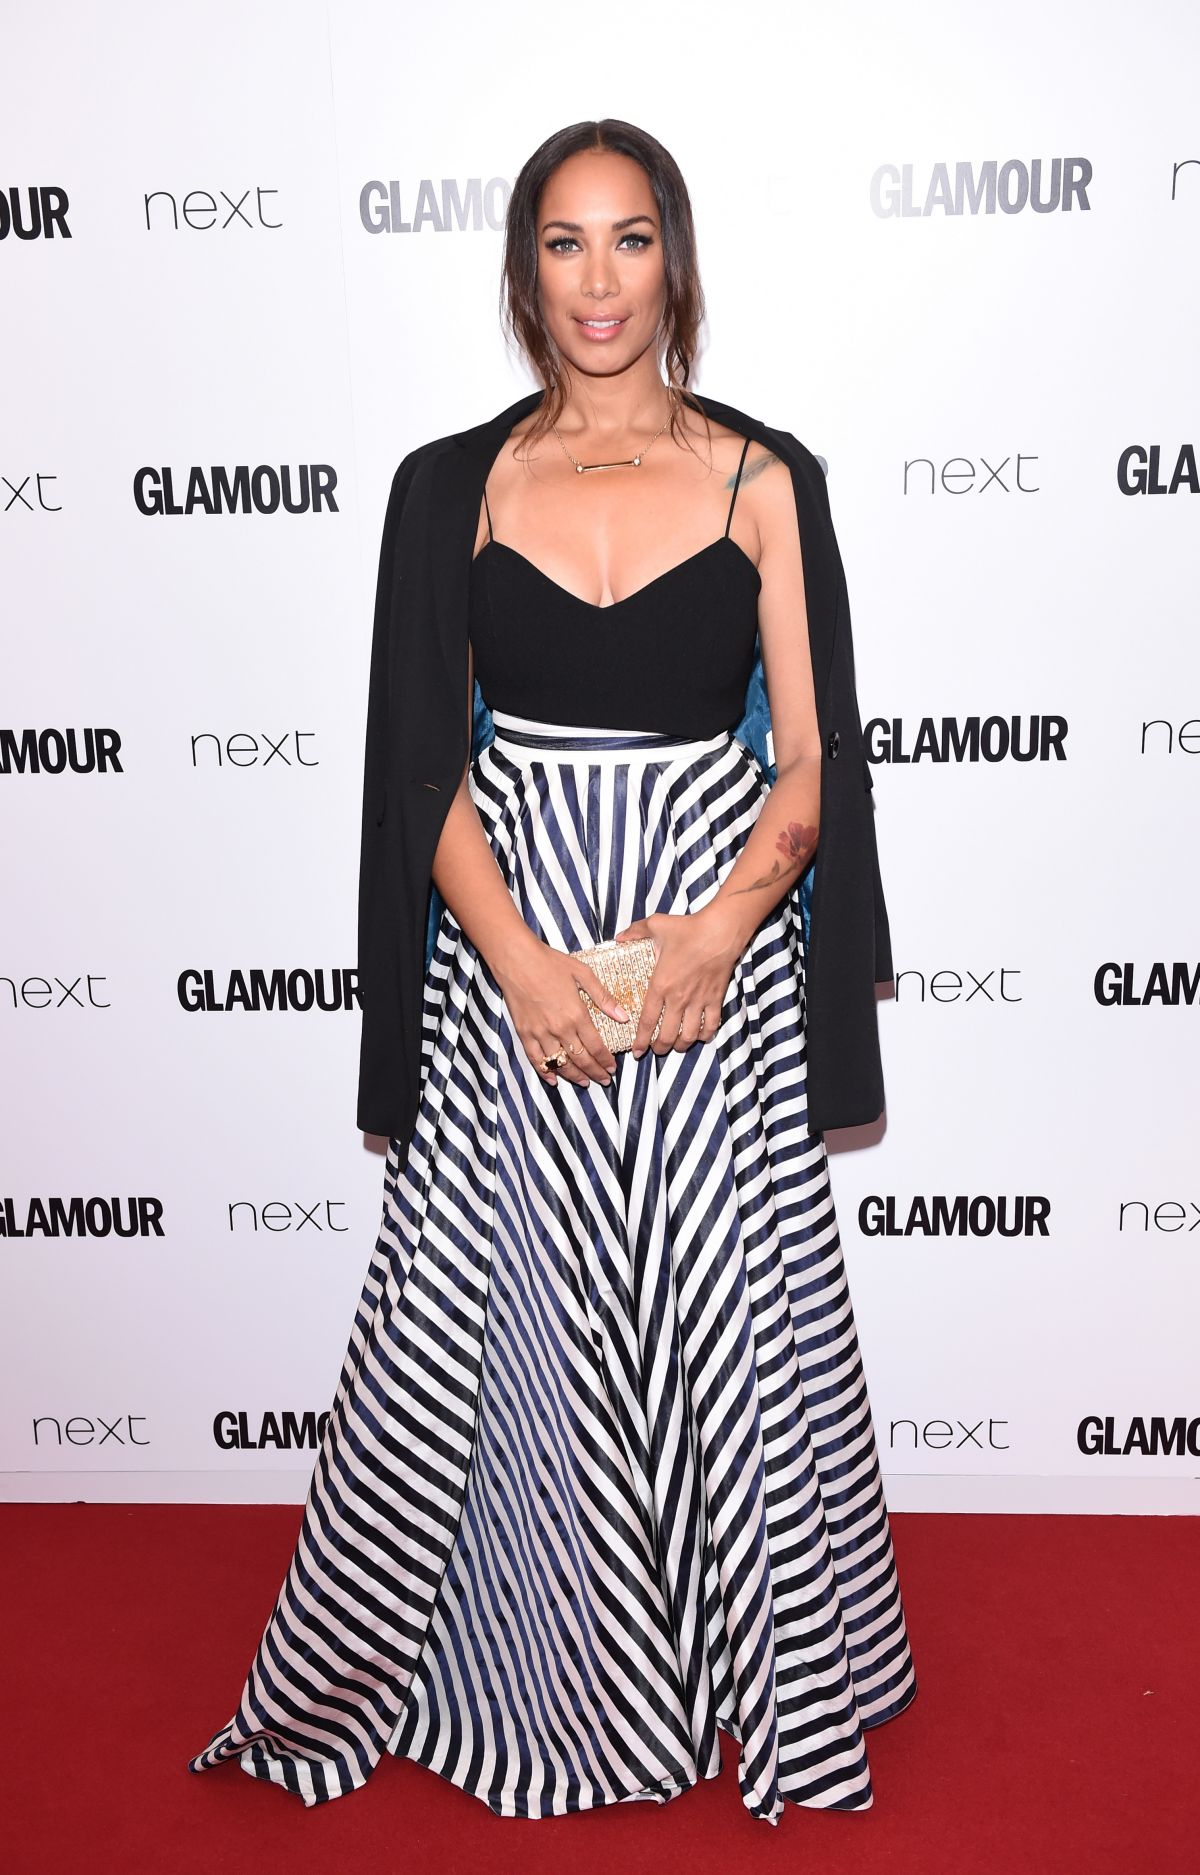 LEONA LEWIS at Glamour Women of the Year Awards in London